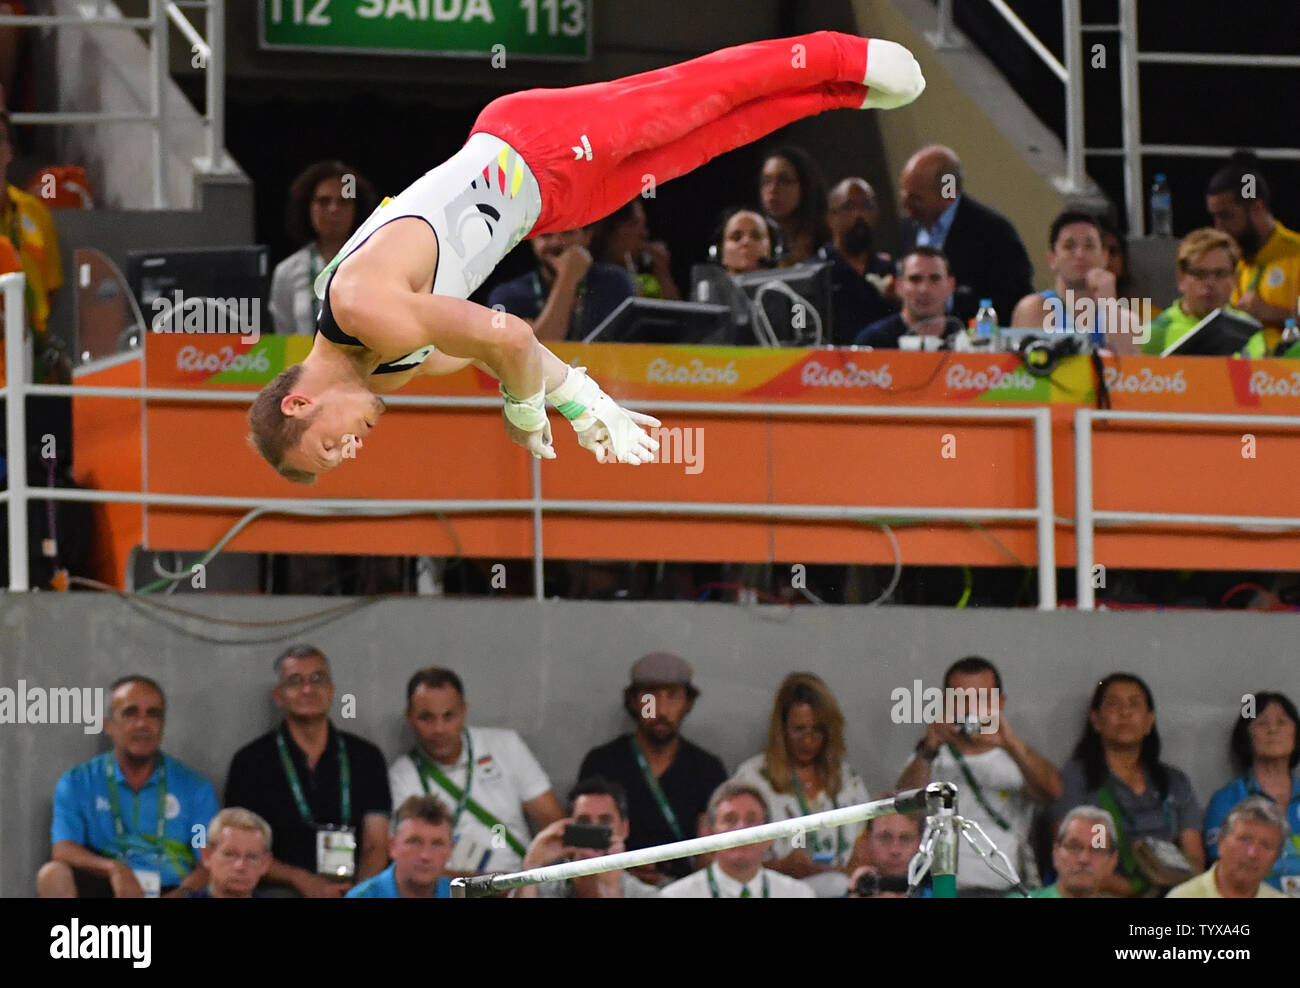 Fabian Hambuechen of Germany competes on the Horizontal Bar Final at the Olympic Arena of the 2016 Rio Summer Olympics in Rio de Janeiro, Brazil, August 16, 2016.          Photo by Kevin Dietsch/UPI Stock Photo